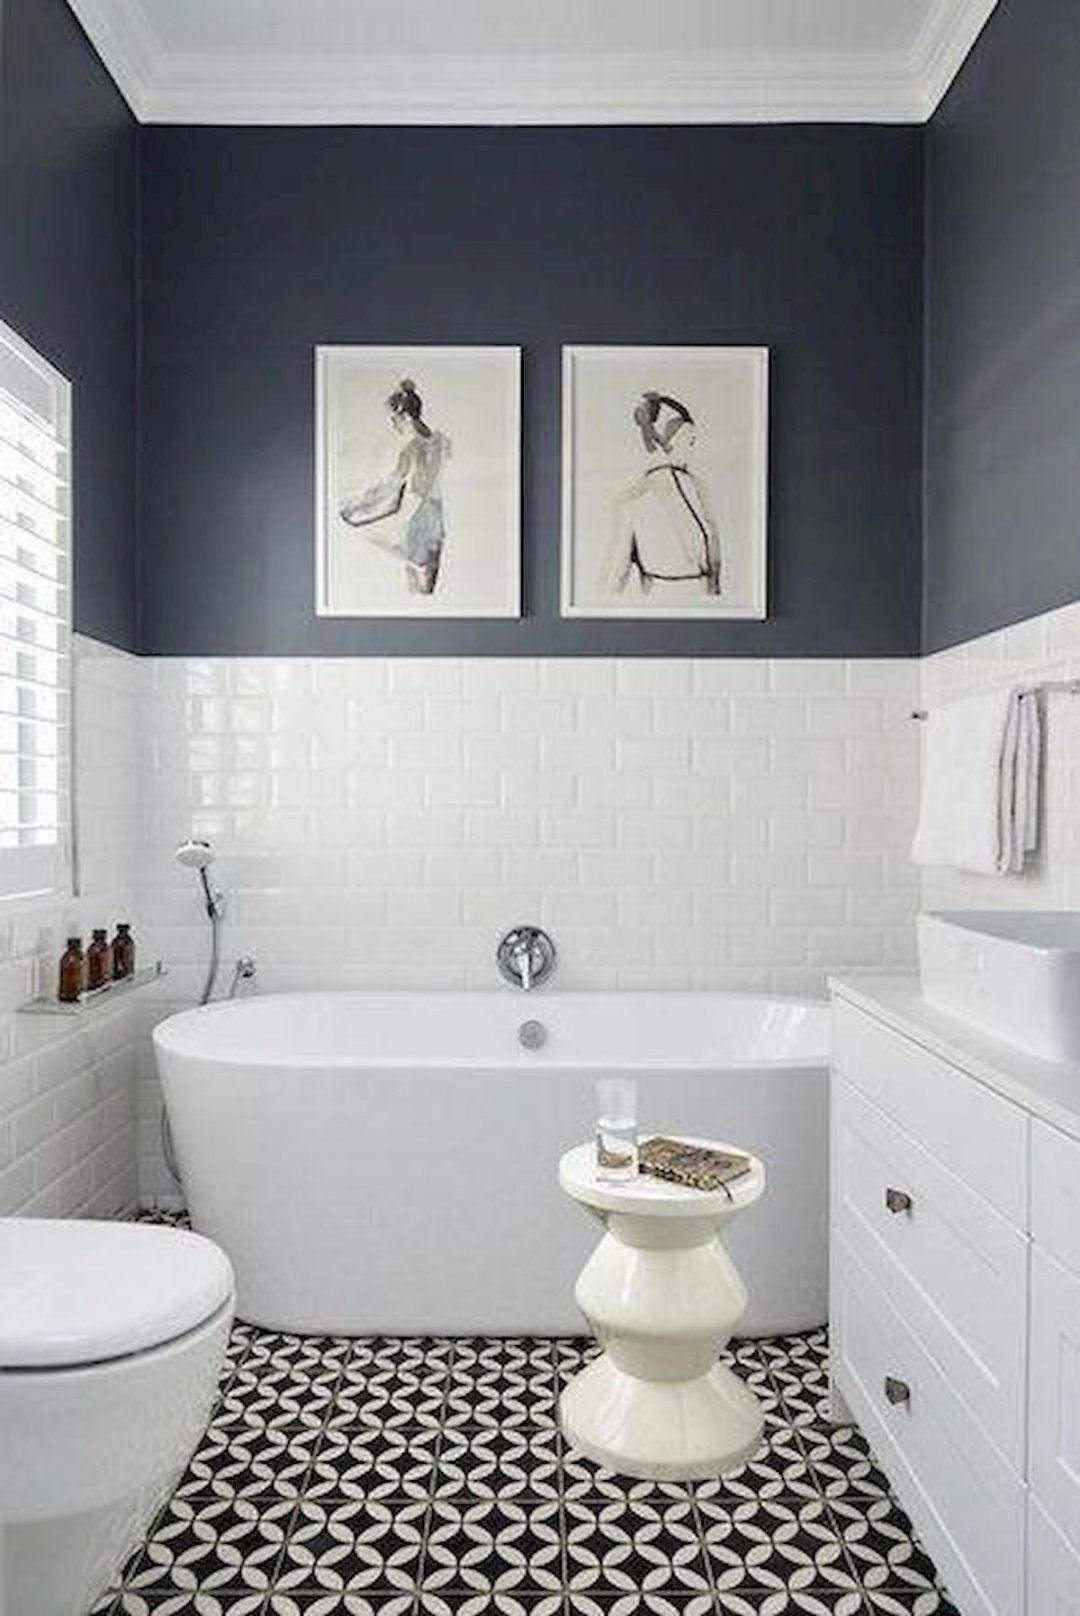 25 Tranquil Scandinavian Bathroom Decor To Get Rid Of Daily Stress - N14